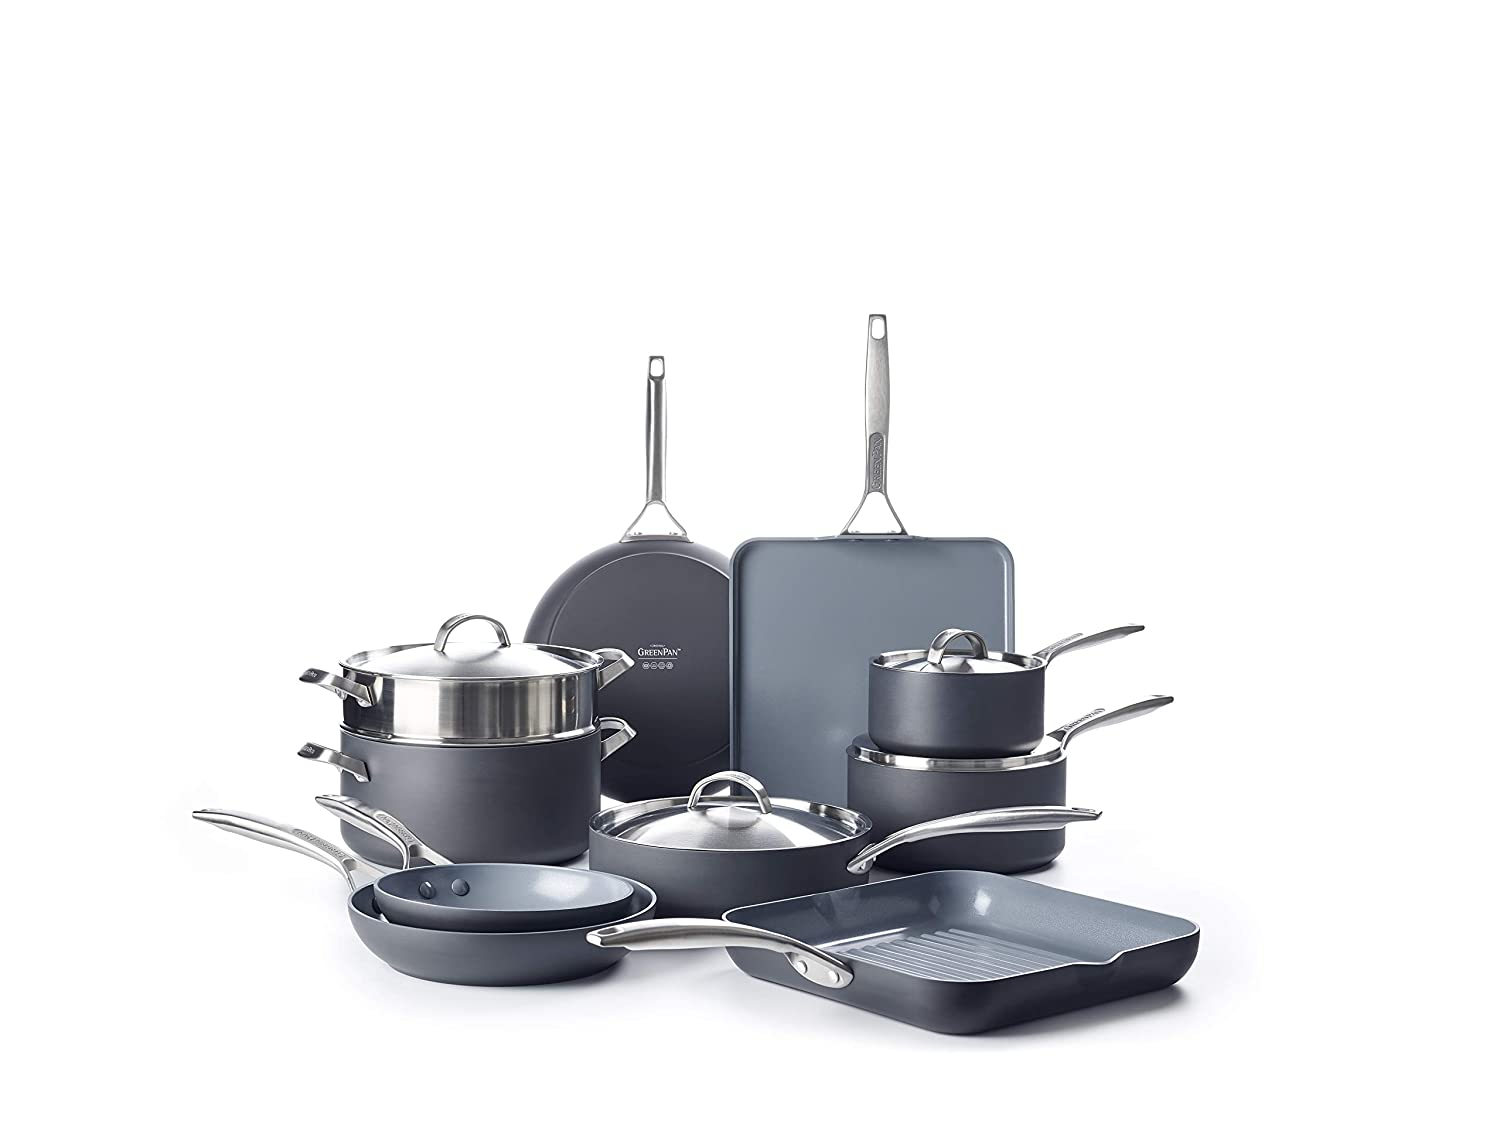 GreenPan CC002282-001 Paris Pro Cookware Set 14pc Gray